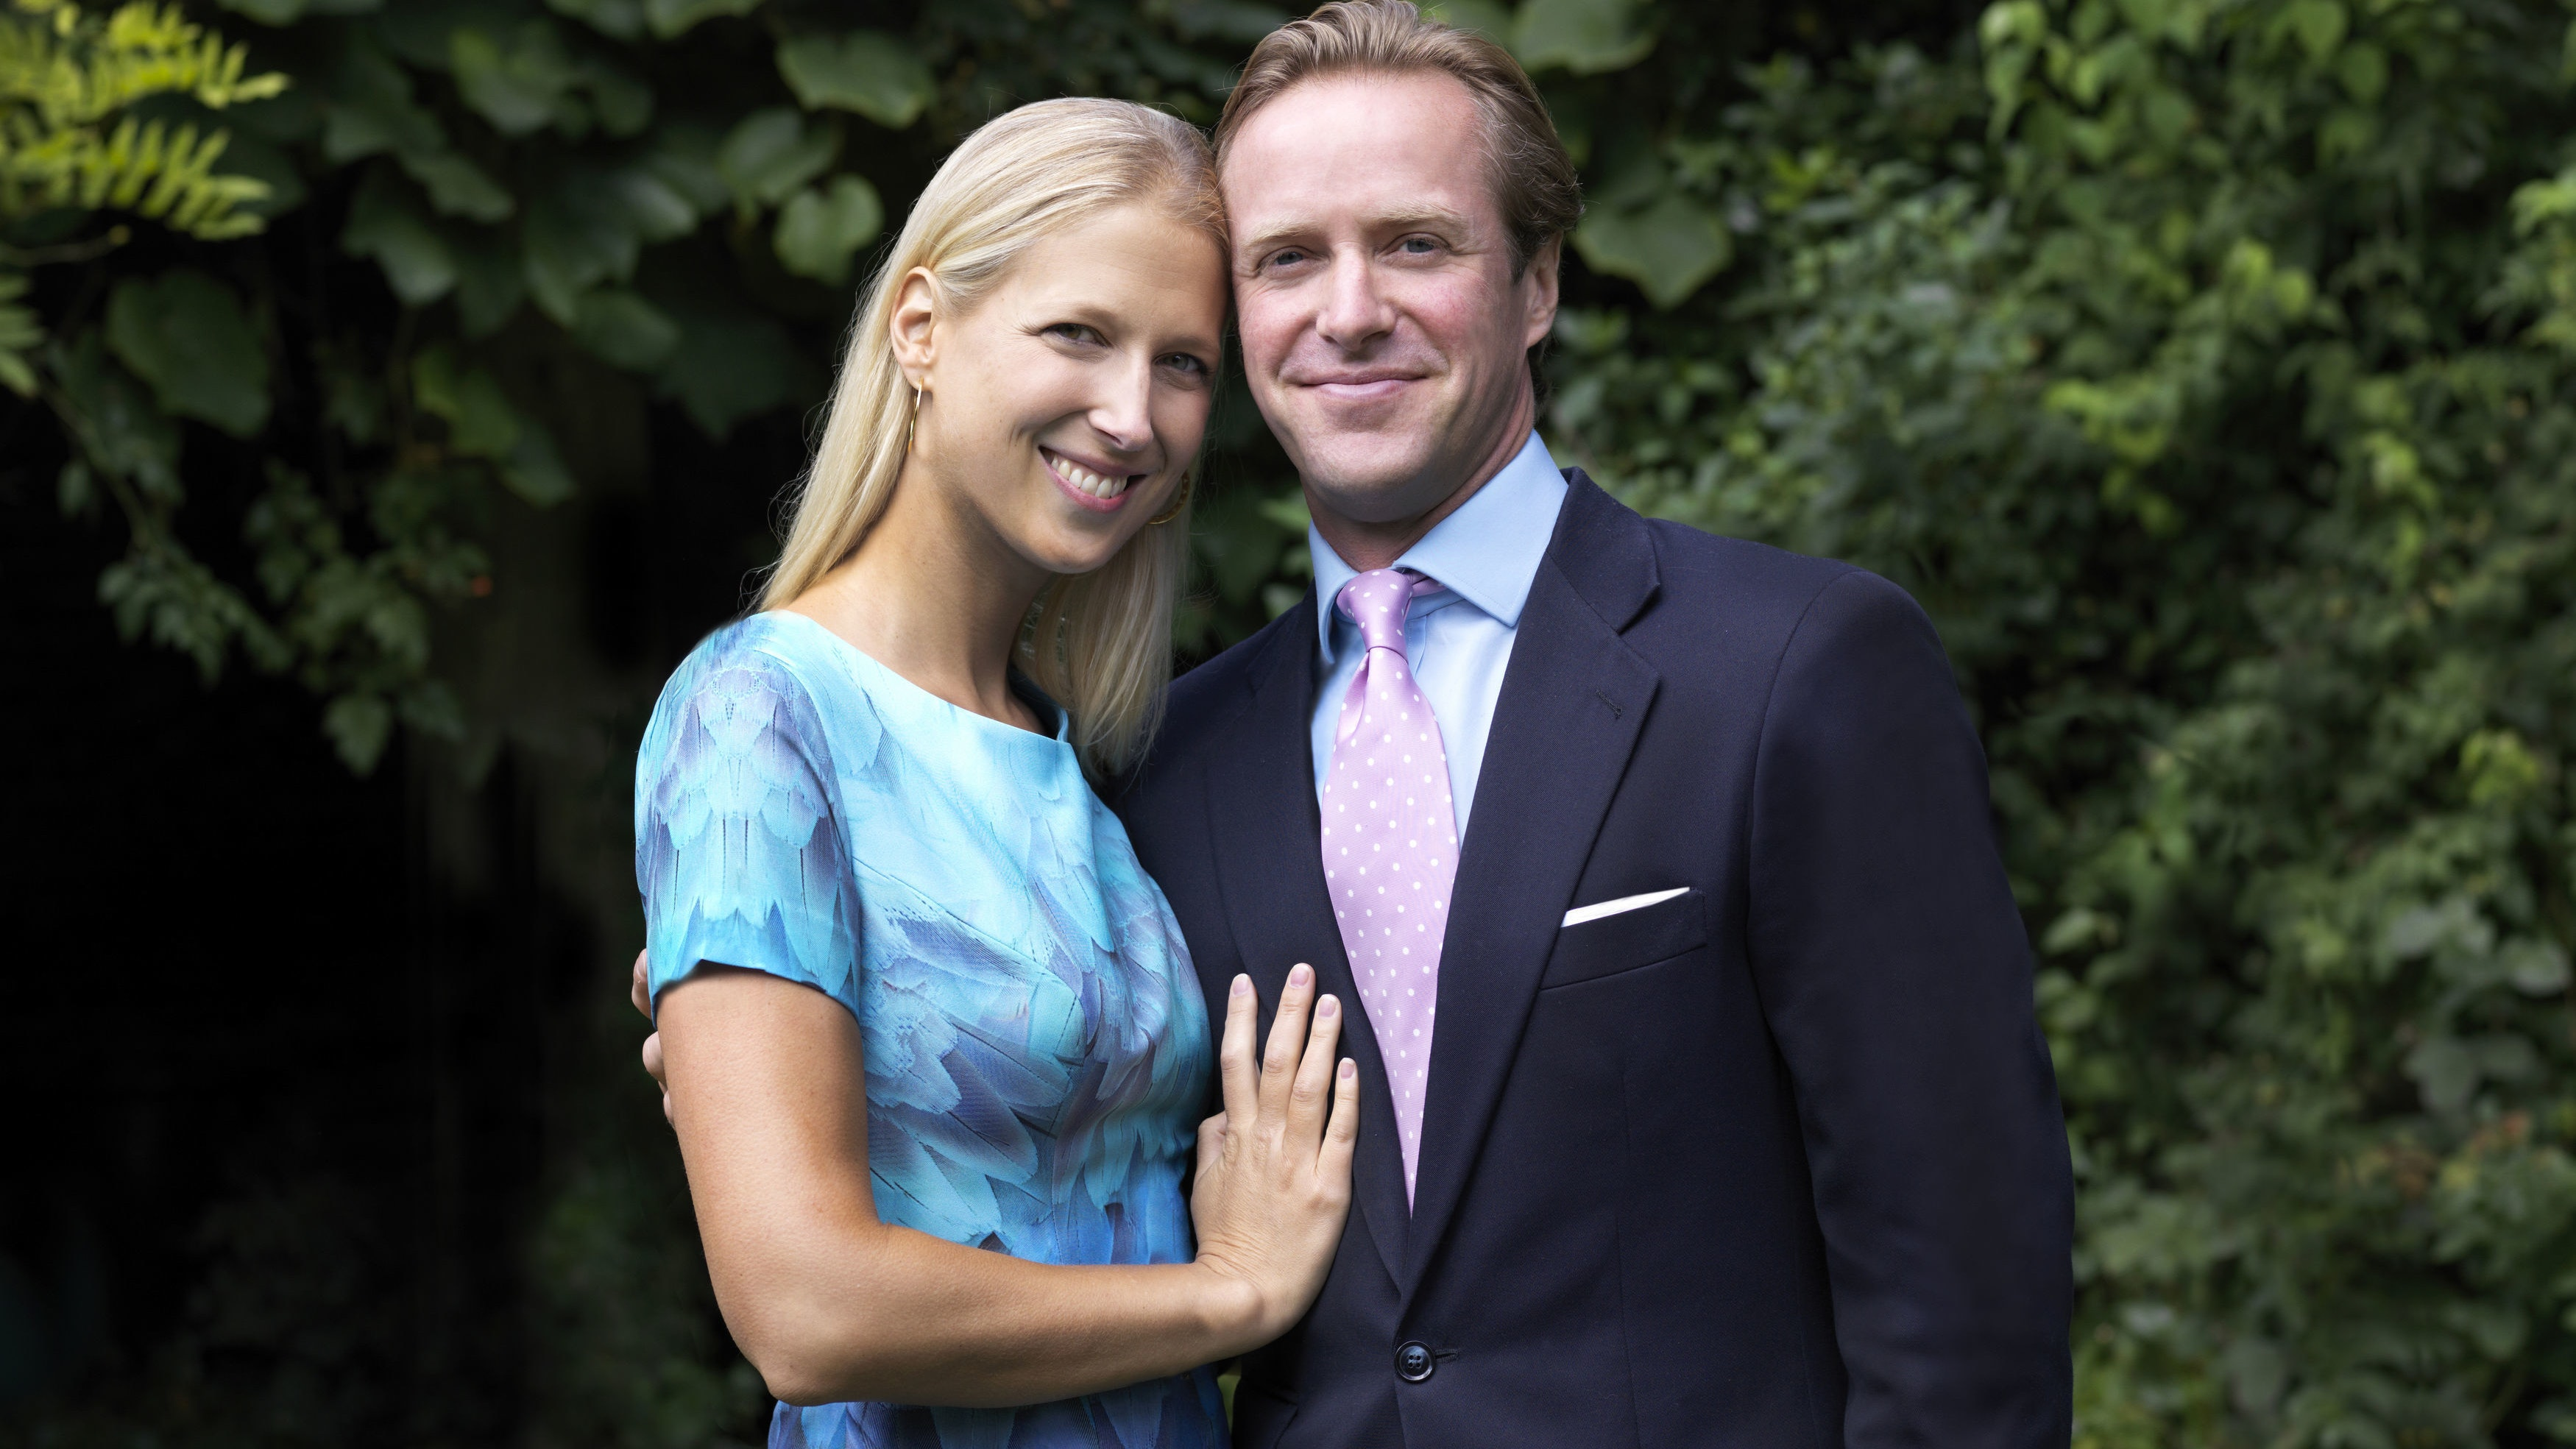 Royal wedding celebrations CONTINUE as Lady Gabriella Windsor wears fourth wedding dress